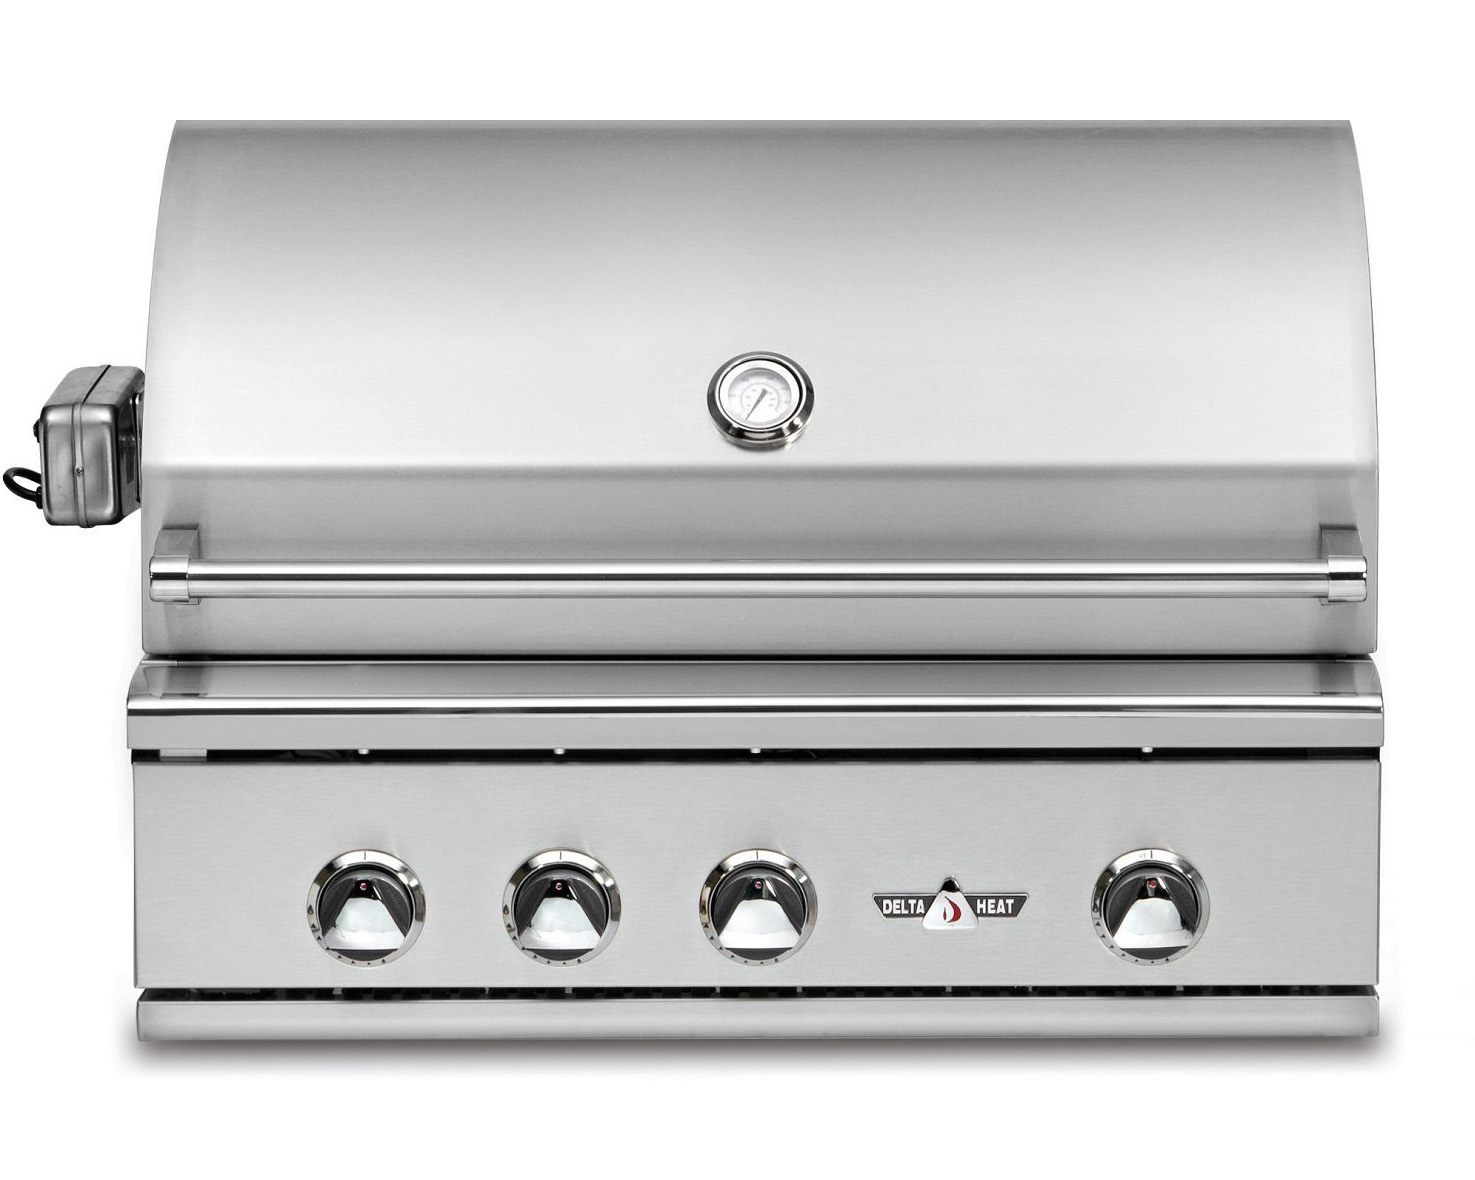 32 Quot Delta Heat Gas Grill With Infrared Rotisserie Ng